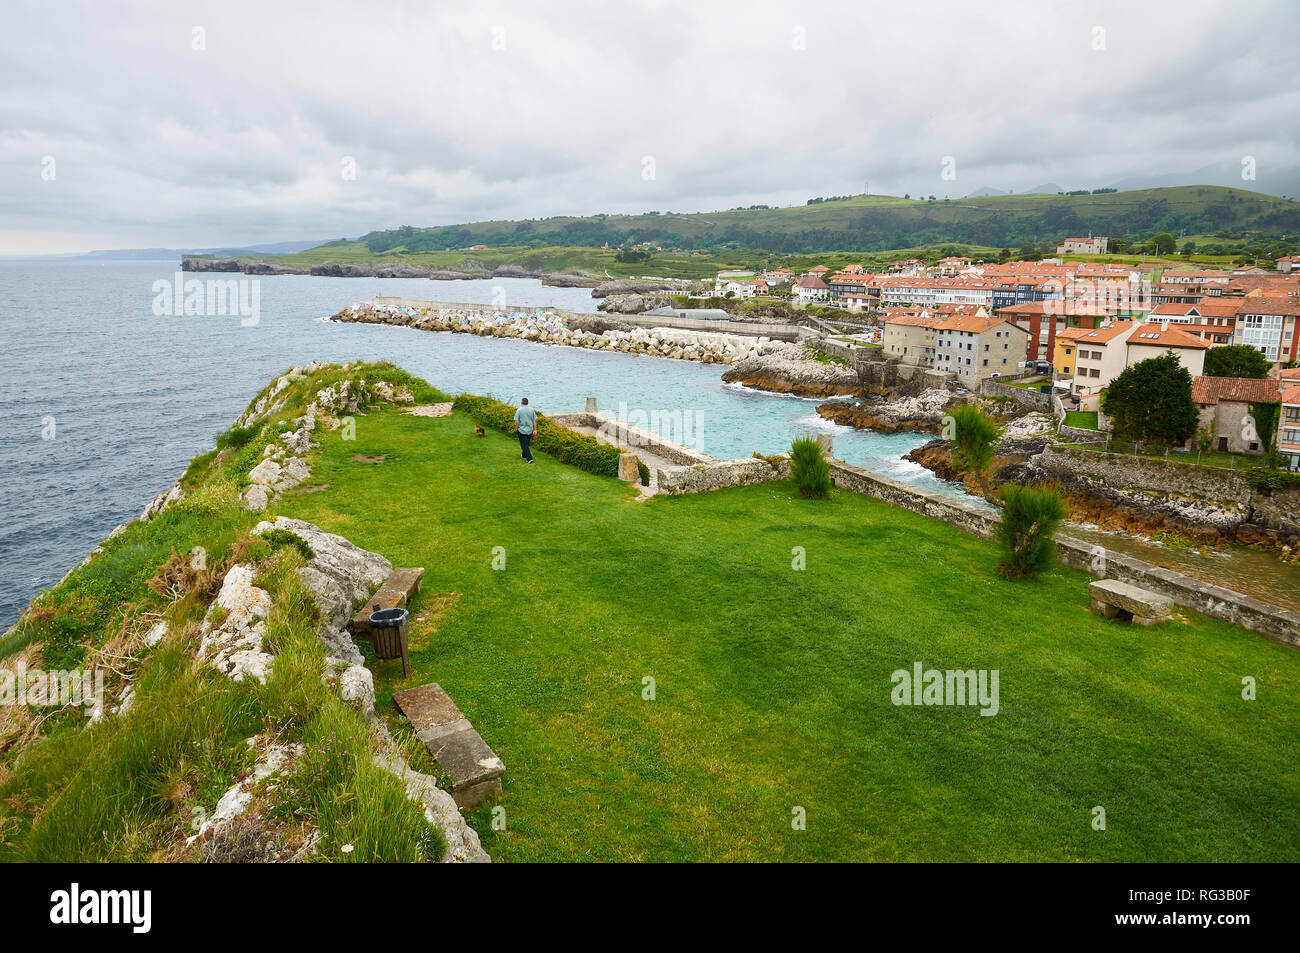 view-of-llanes-town-and-port-with-cubos-